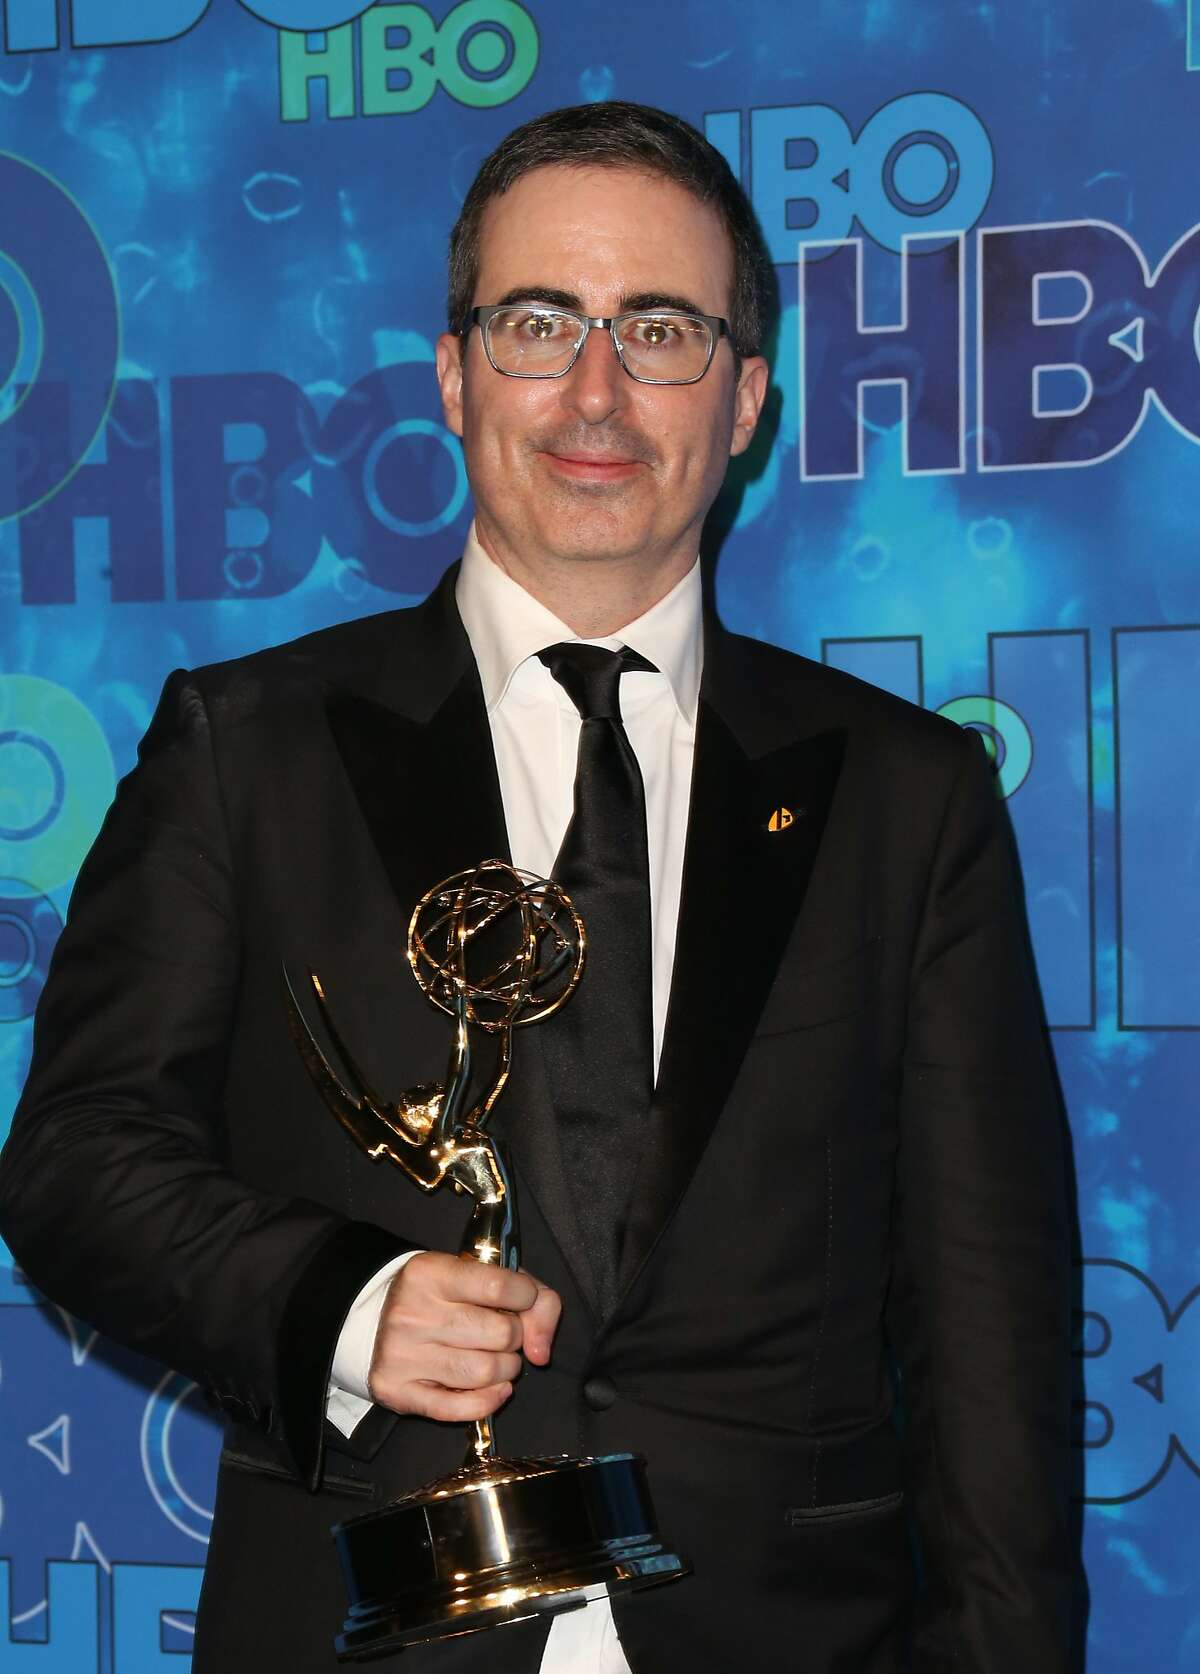 Comedian John Oliver attends HBO's Official 2016 Emmy After Party at The Plaza at the Pacific Design Center on September 18, 2016 in Los Angeles, California.